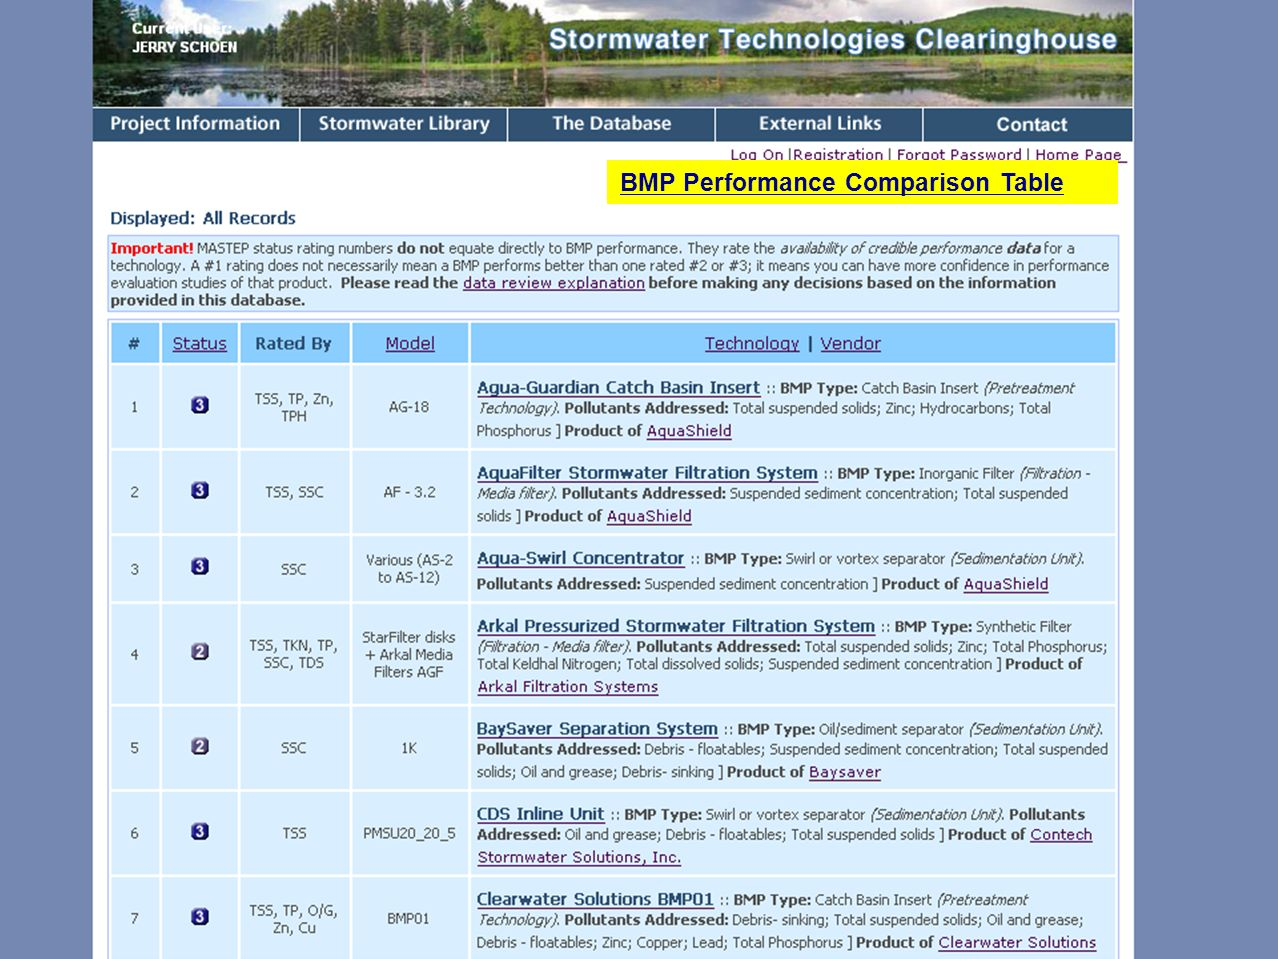 BMP Performance Comparison Table